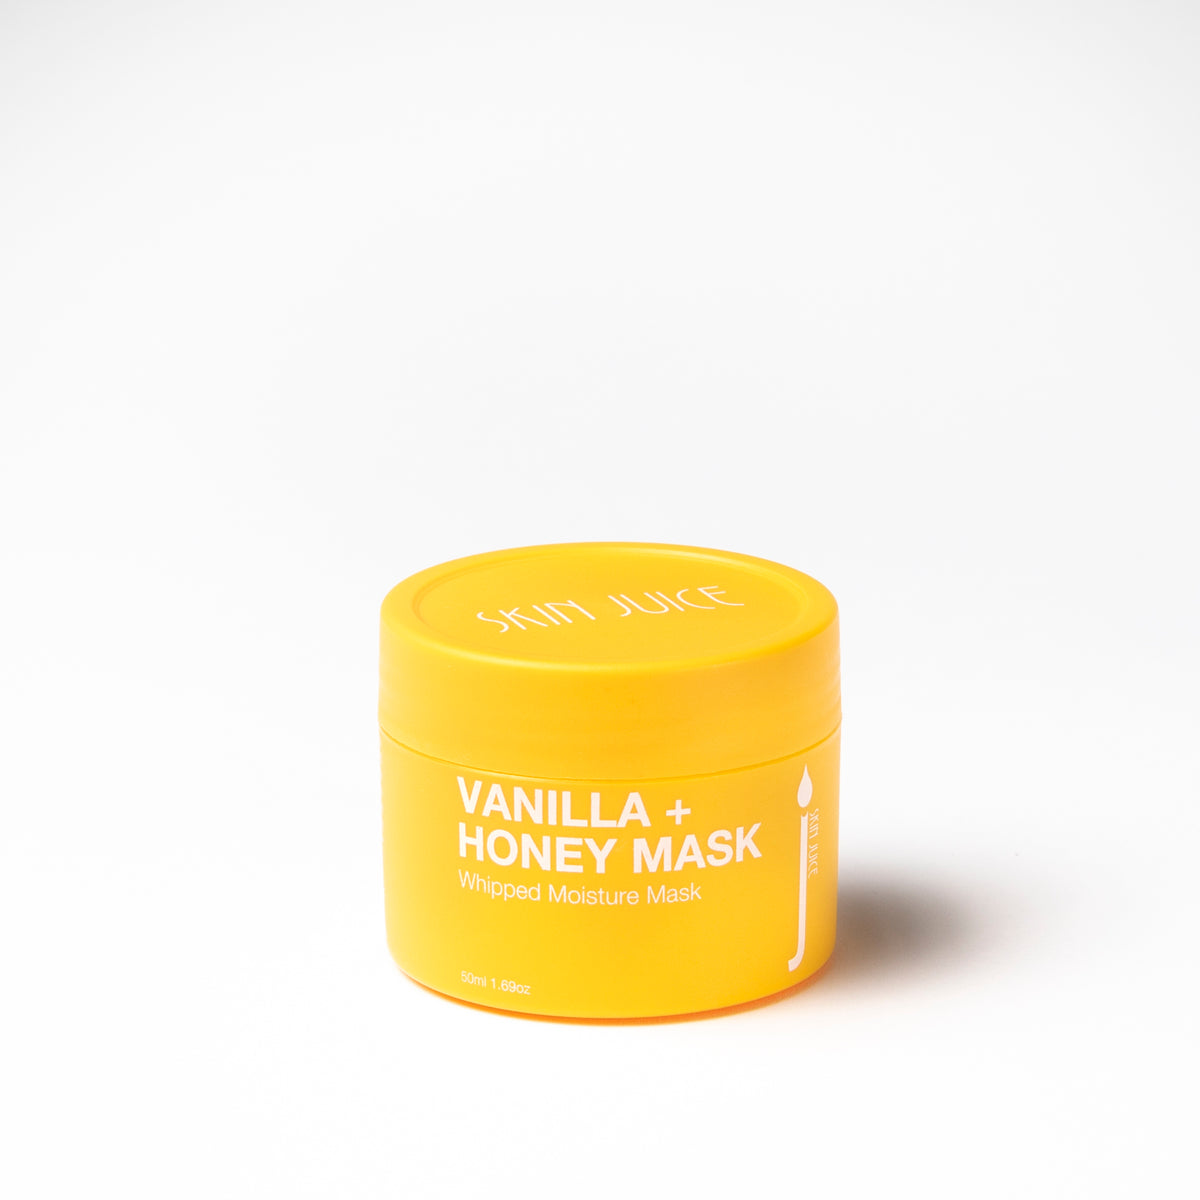 Skin Juice Vanilla and Honey Face Mask restores hydration and prevents future moisture loss. Official Skin Juice stockist. 100% natural Australian skincare.